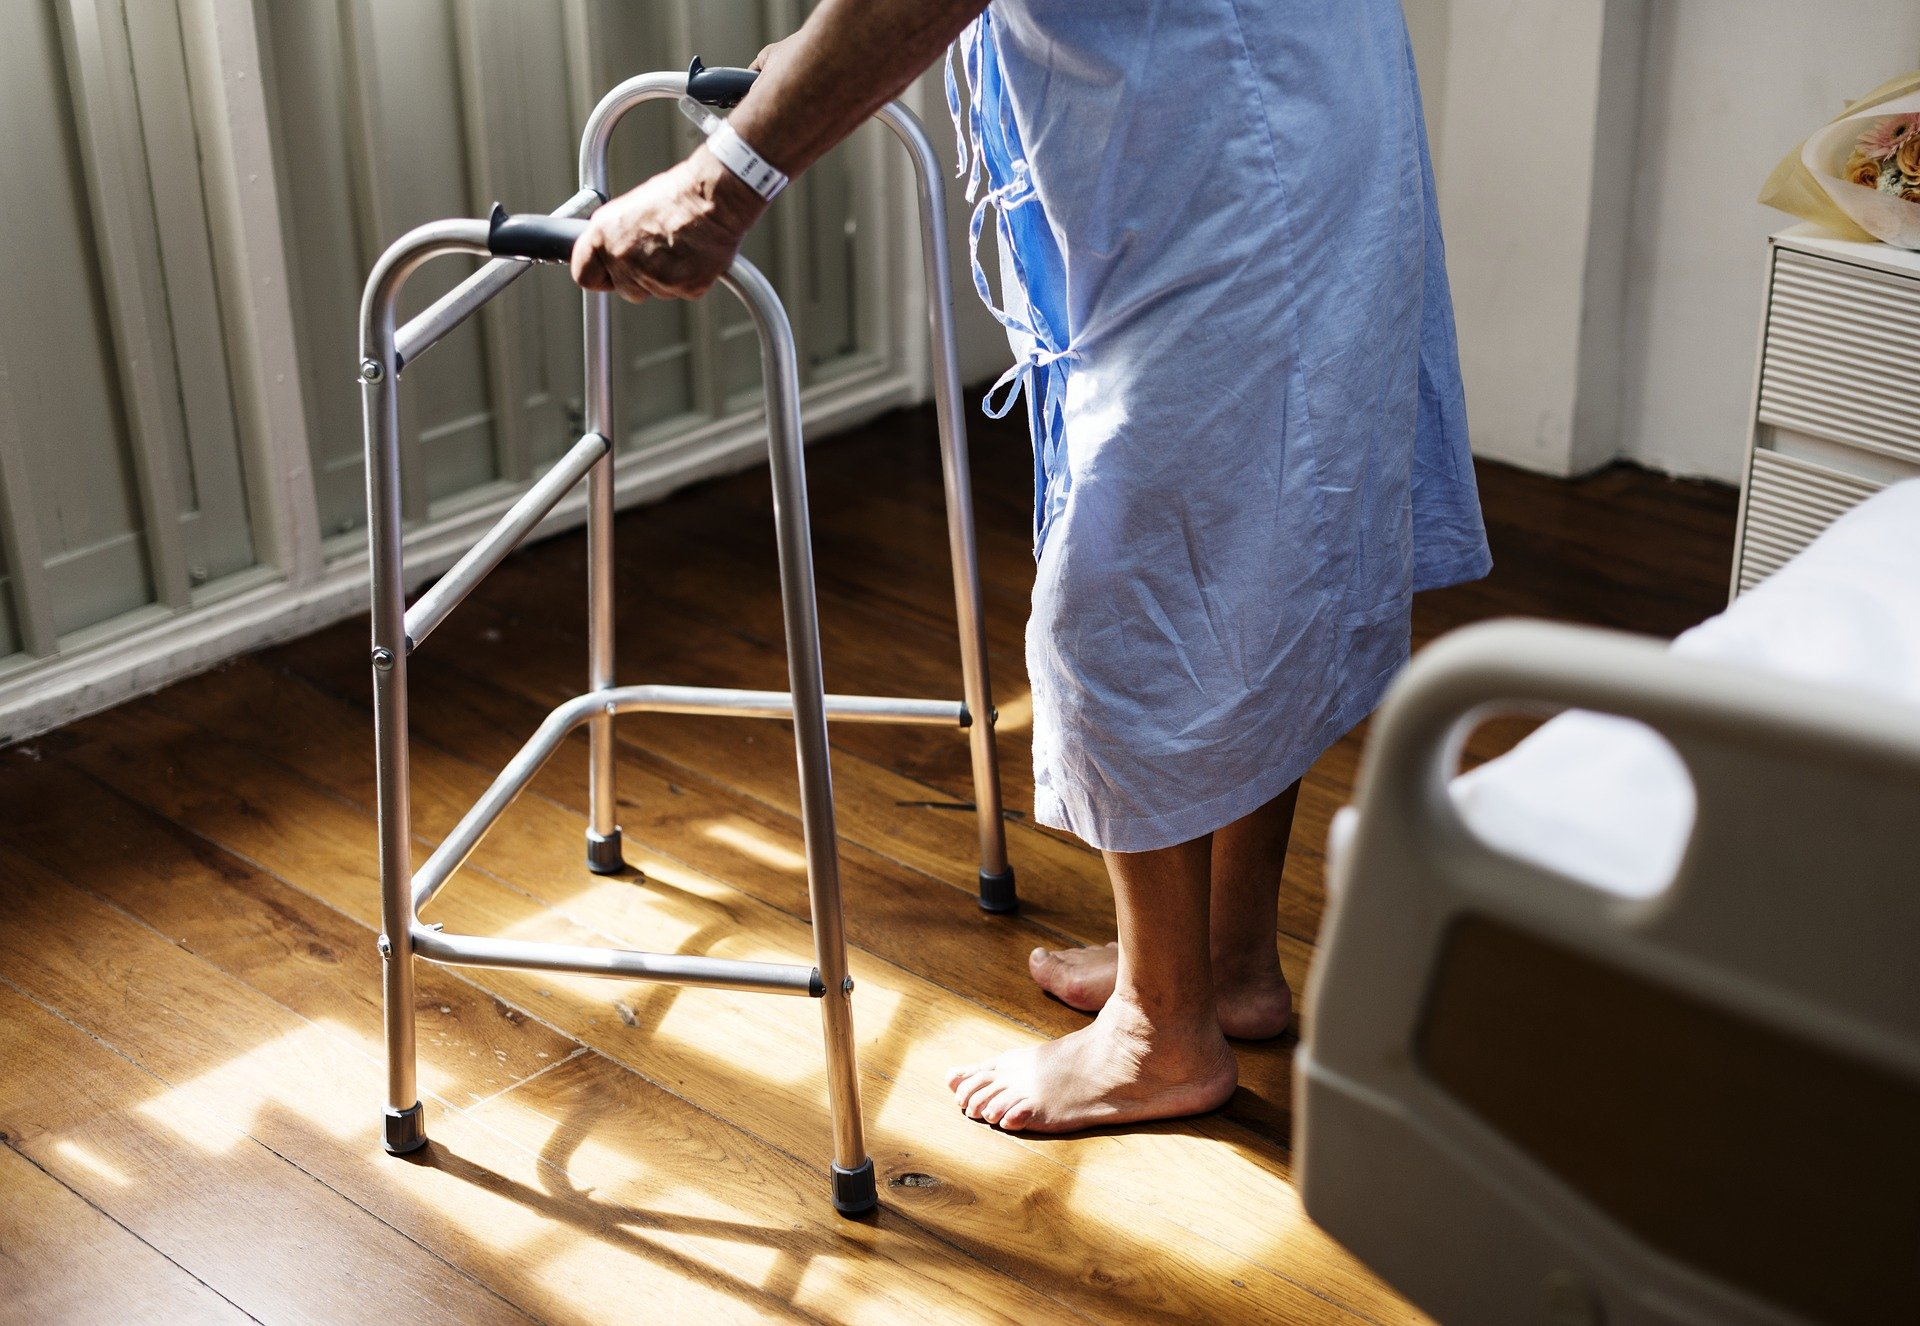 Senior man using a walker. | Source: rawpixel/Pixabay